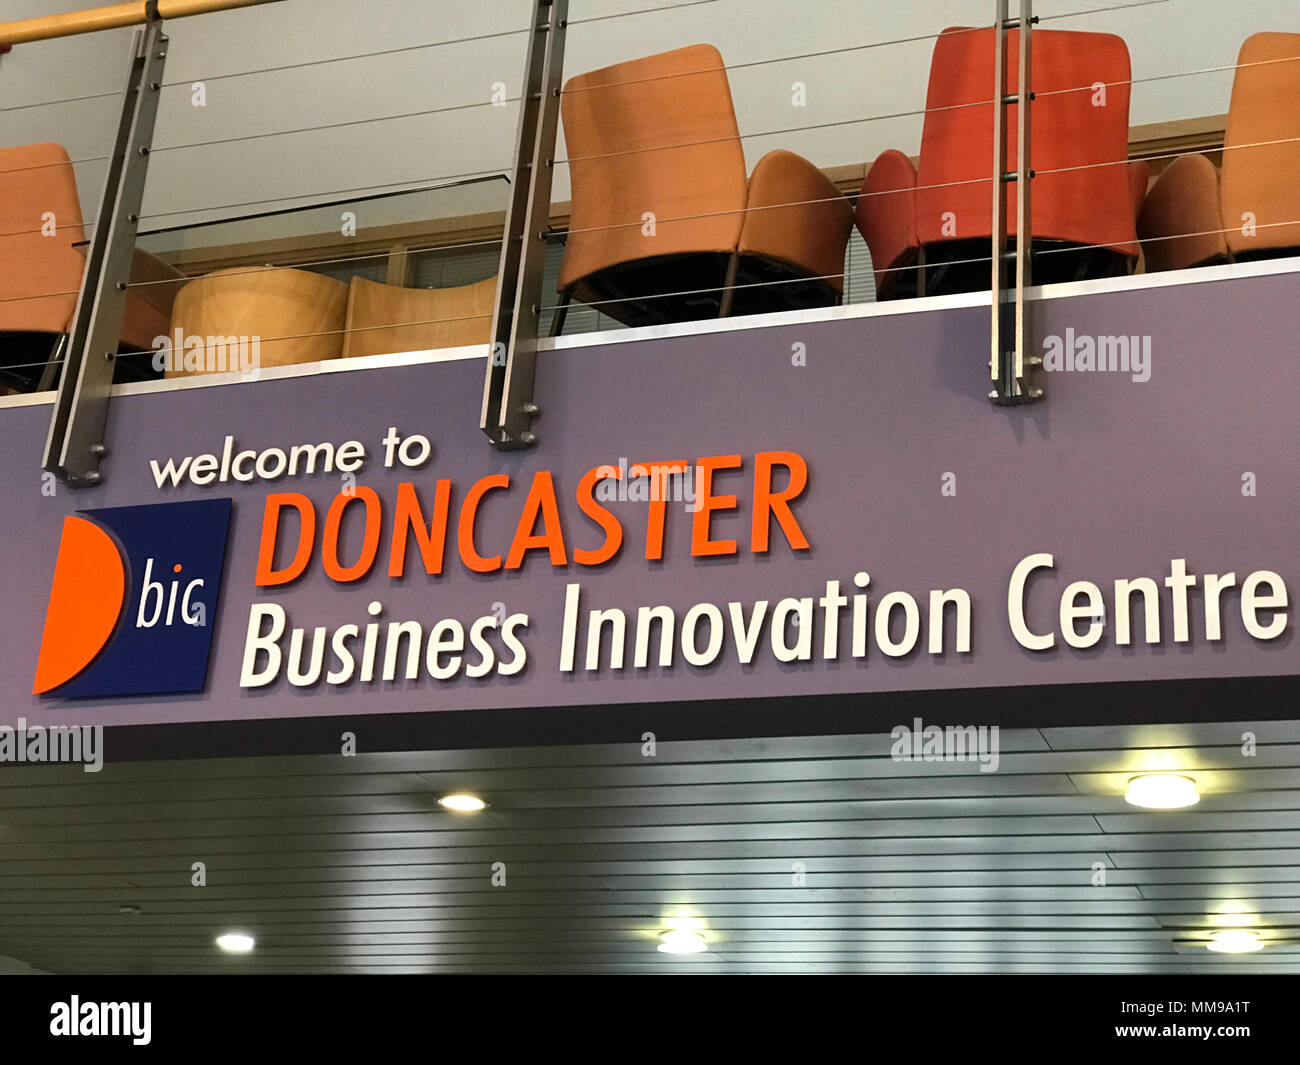 Doncaster BIC Business Innovation Centre, South Yorkshire, Ten Pound Walk, Doncaster DN4 5HX , England - Stock Image